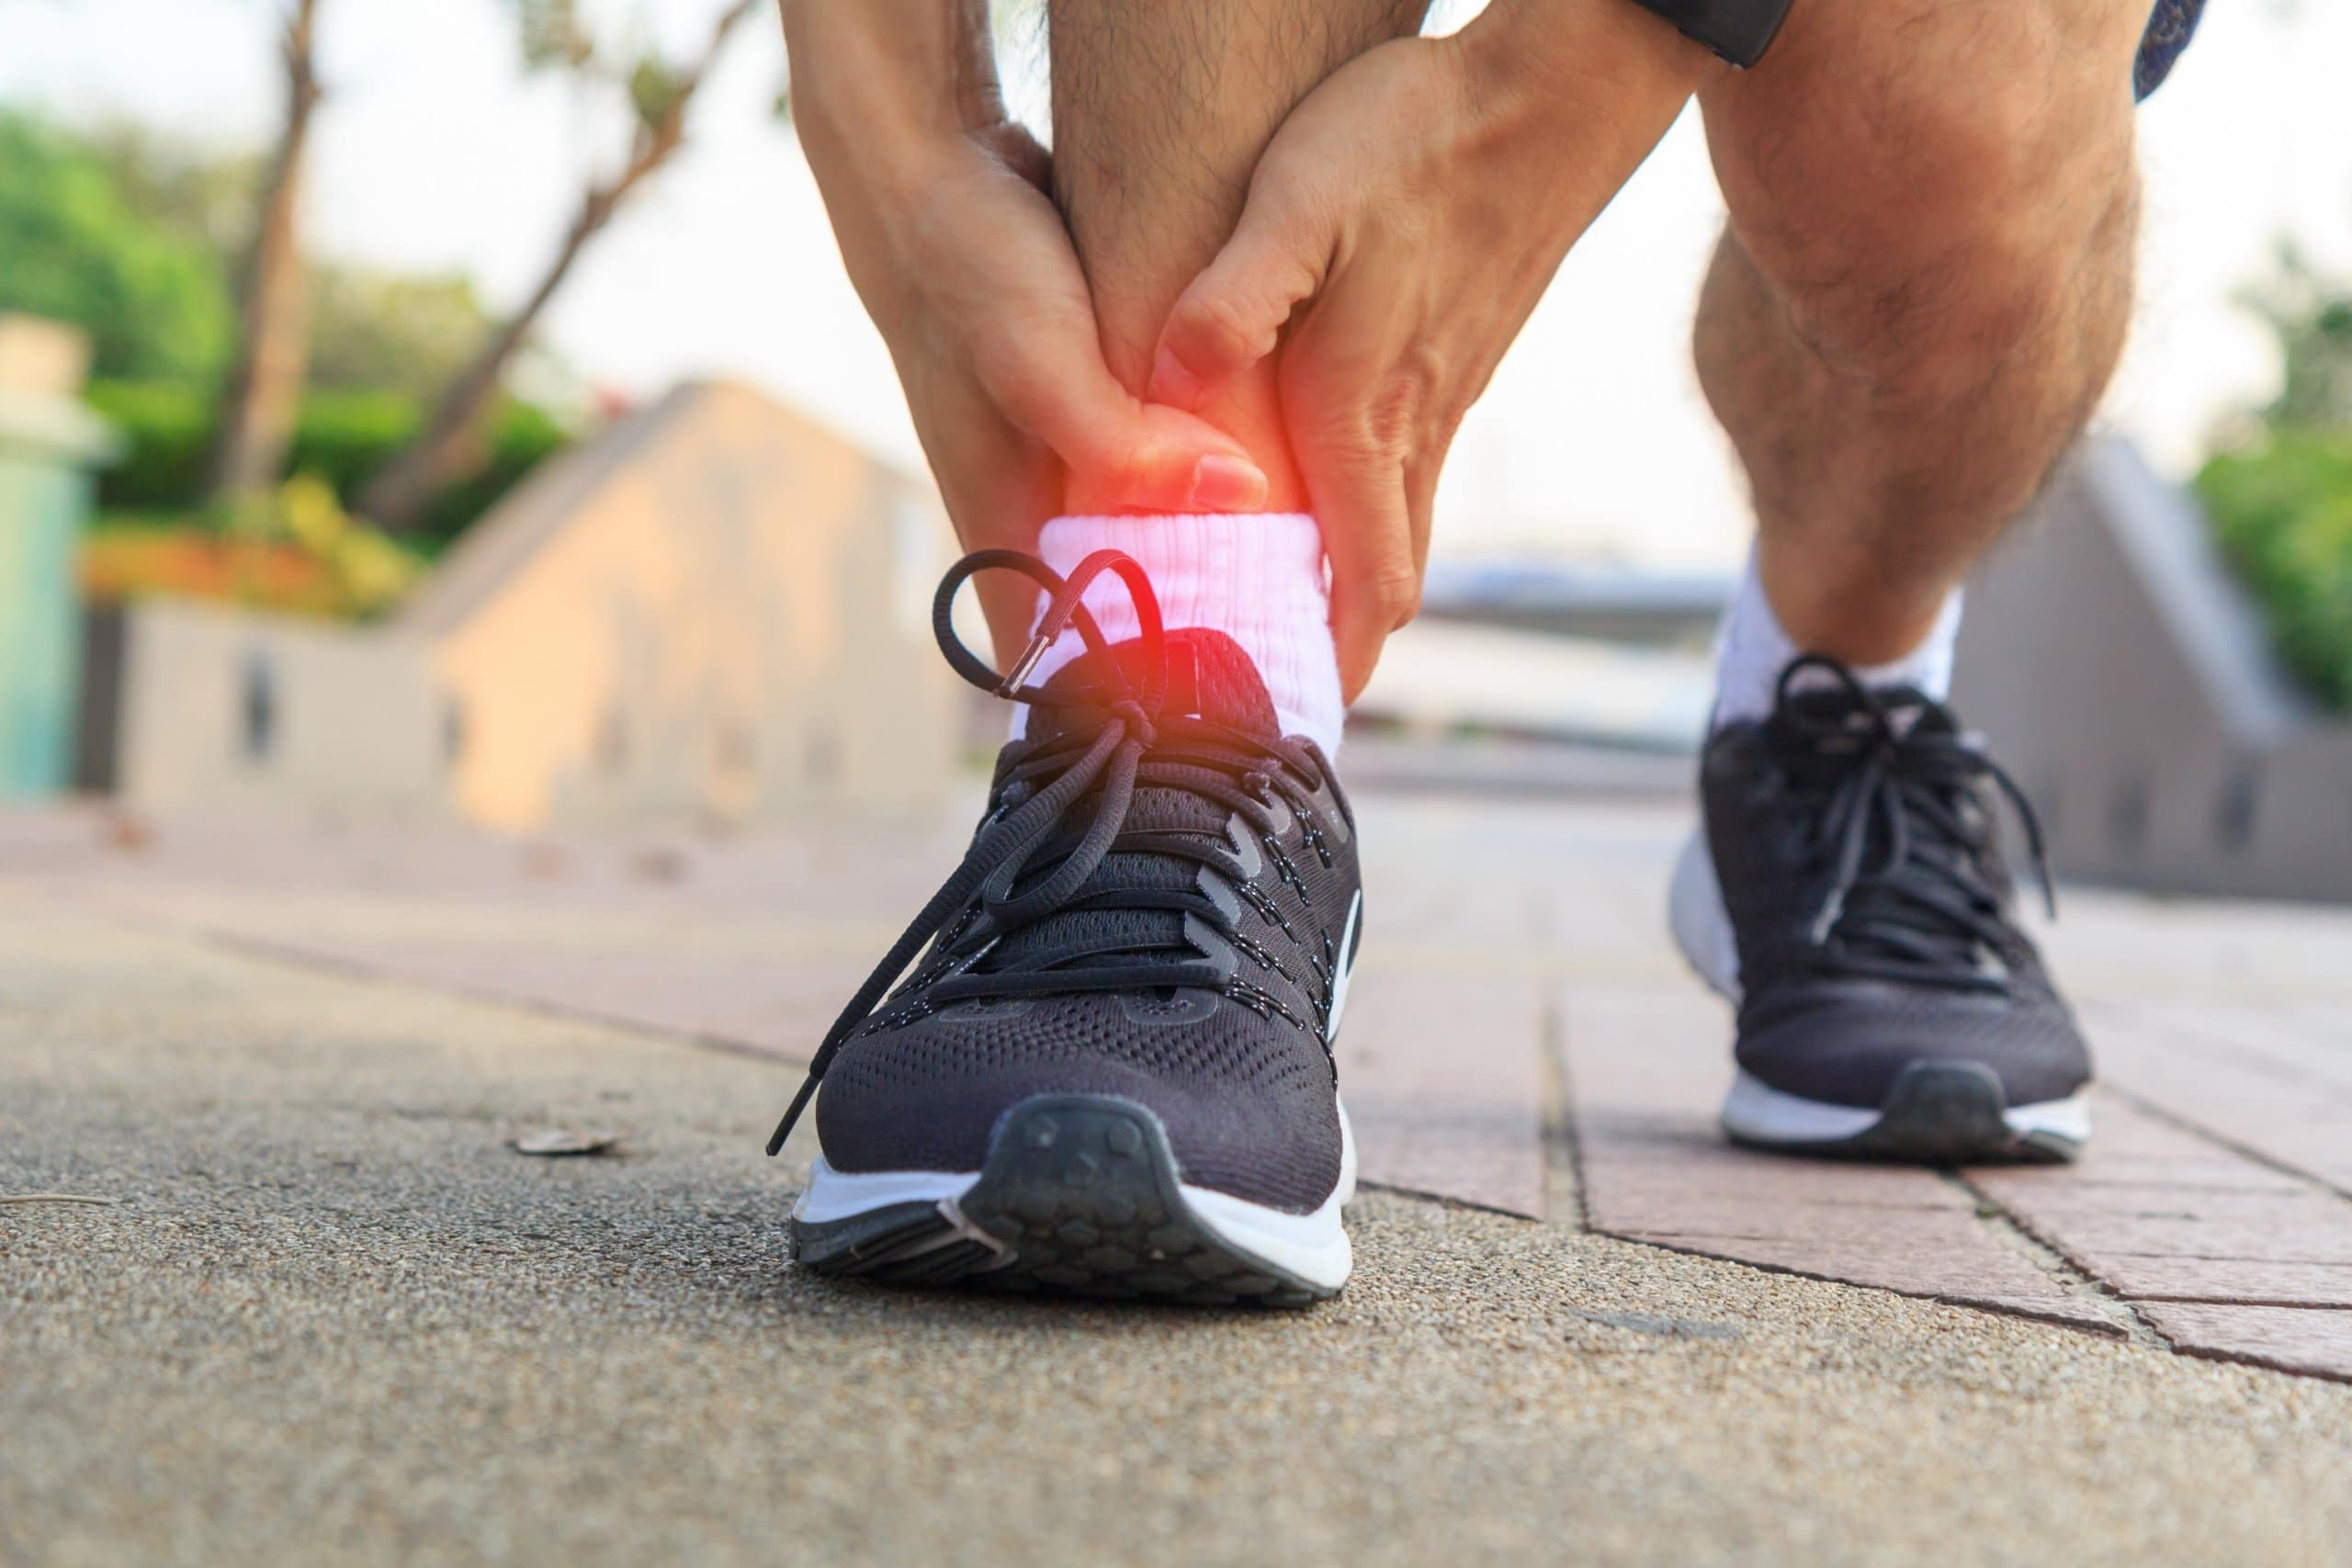 Five Common Conditions that Cause Foot and Ankle Pain